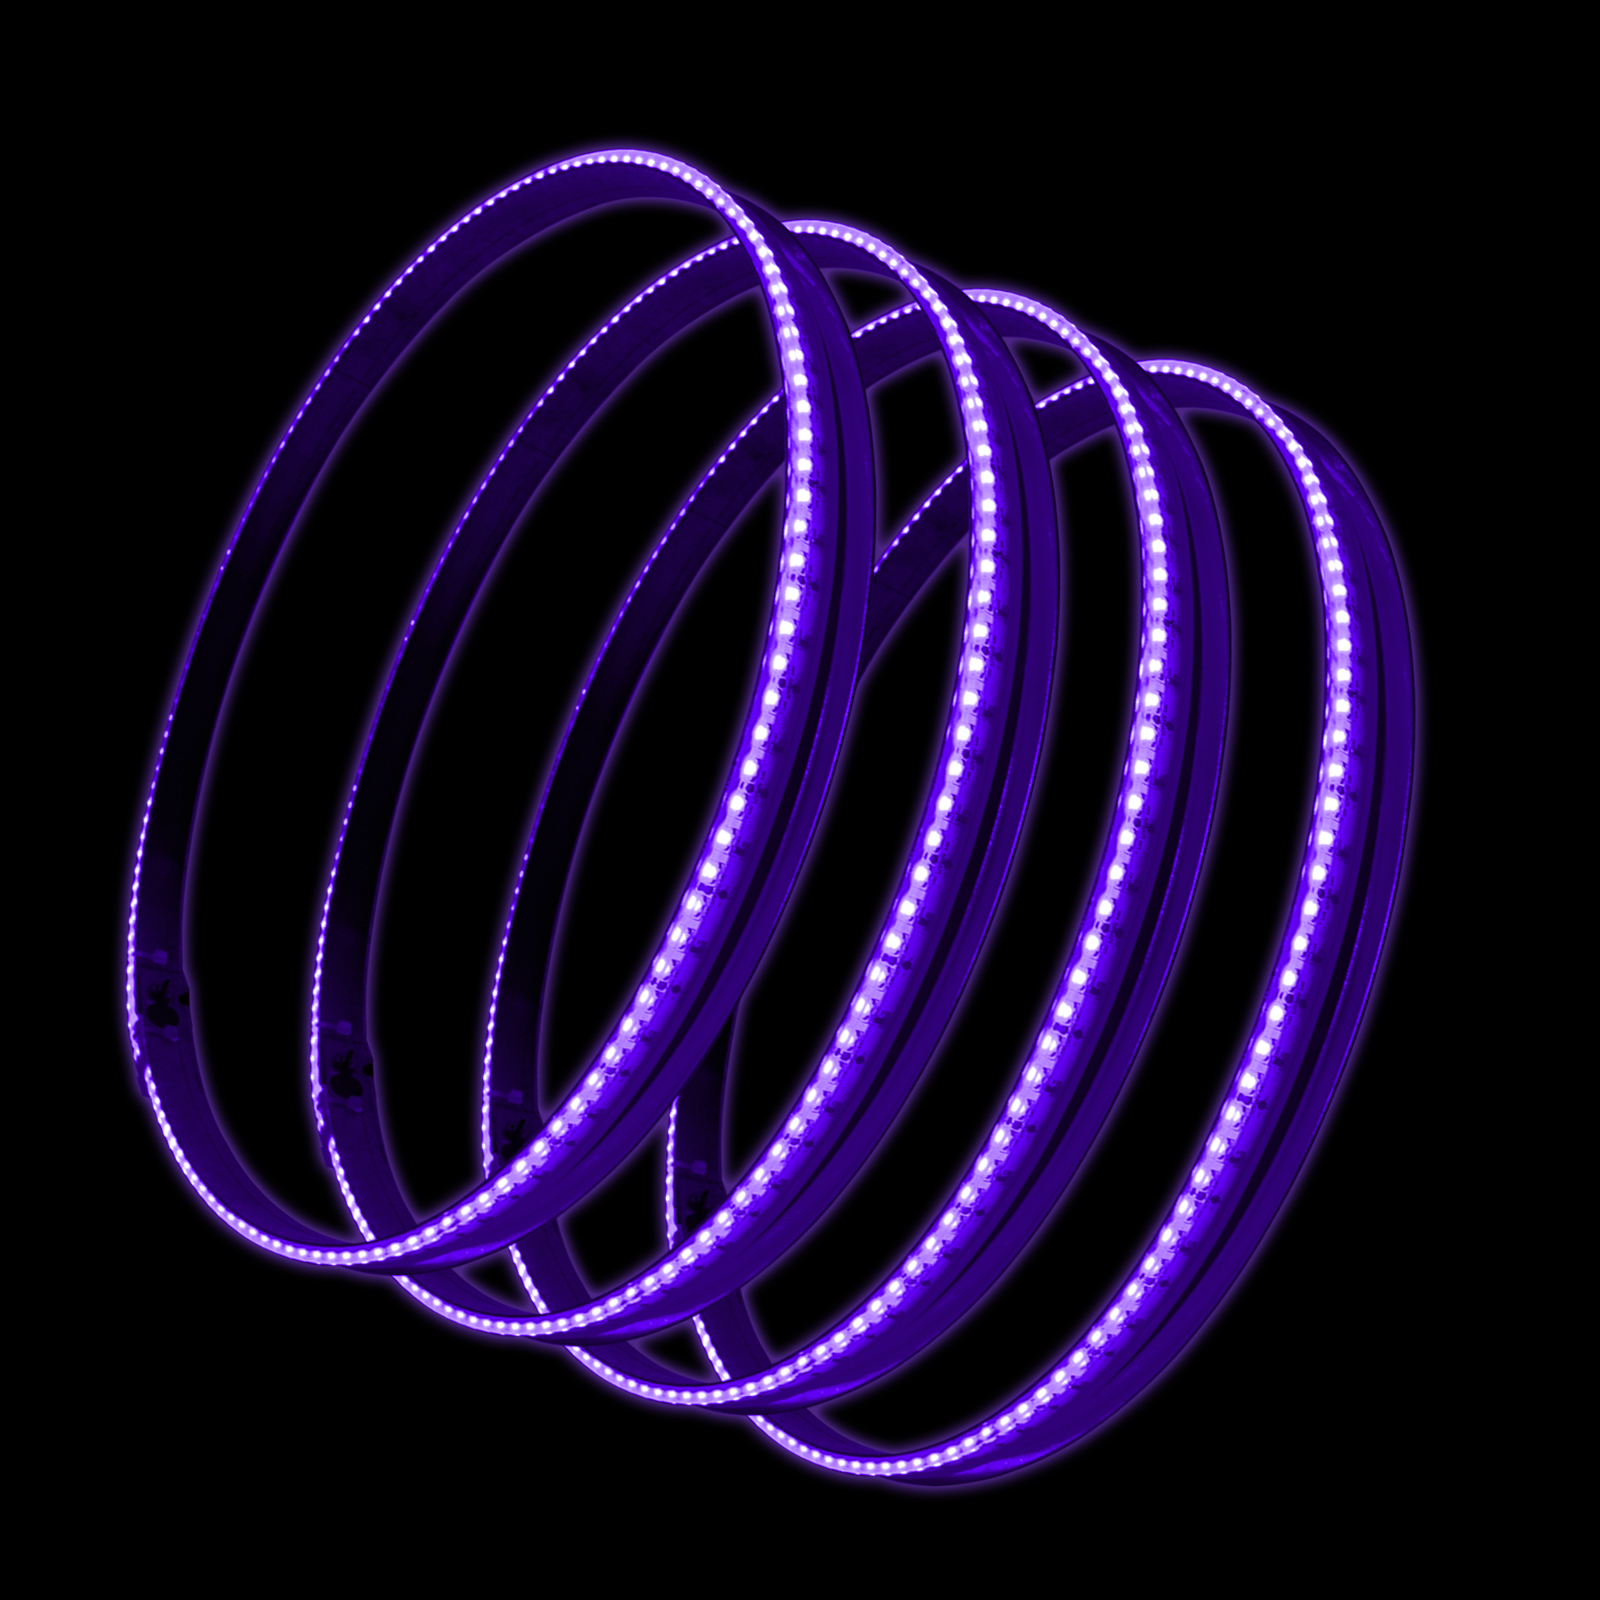 Oracle Lighting LED Illuminated Wheel Rings - UV/Purple - Oracle Lighting 4215-007